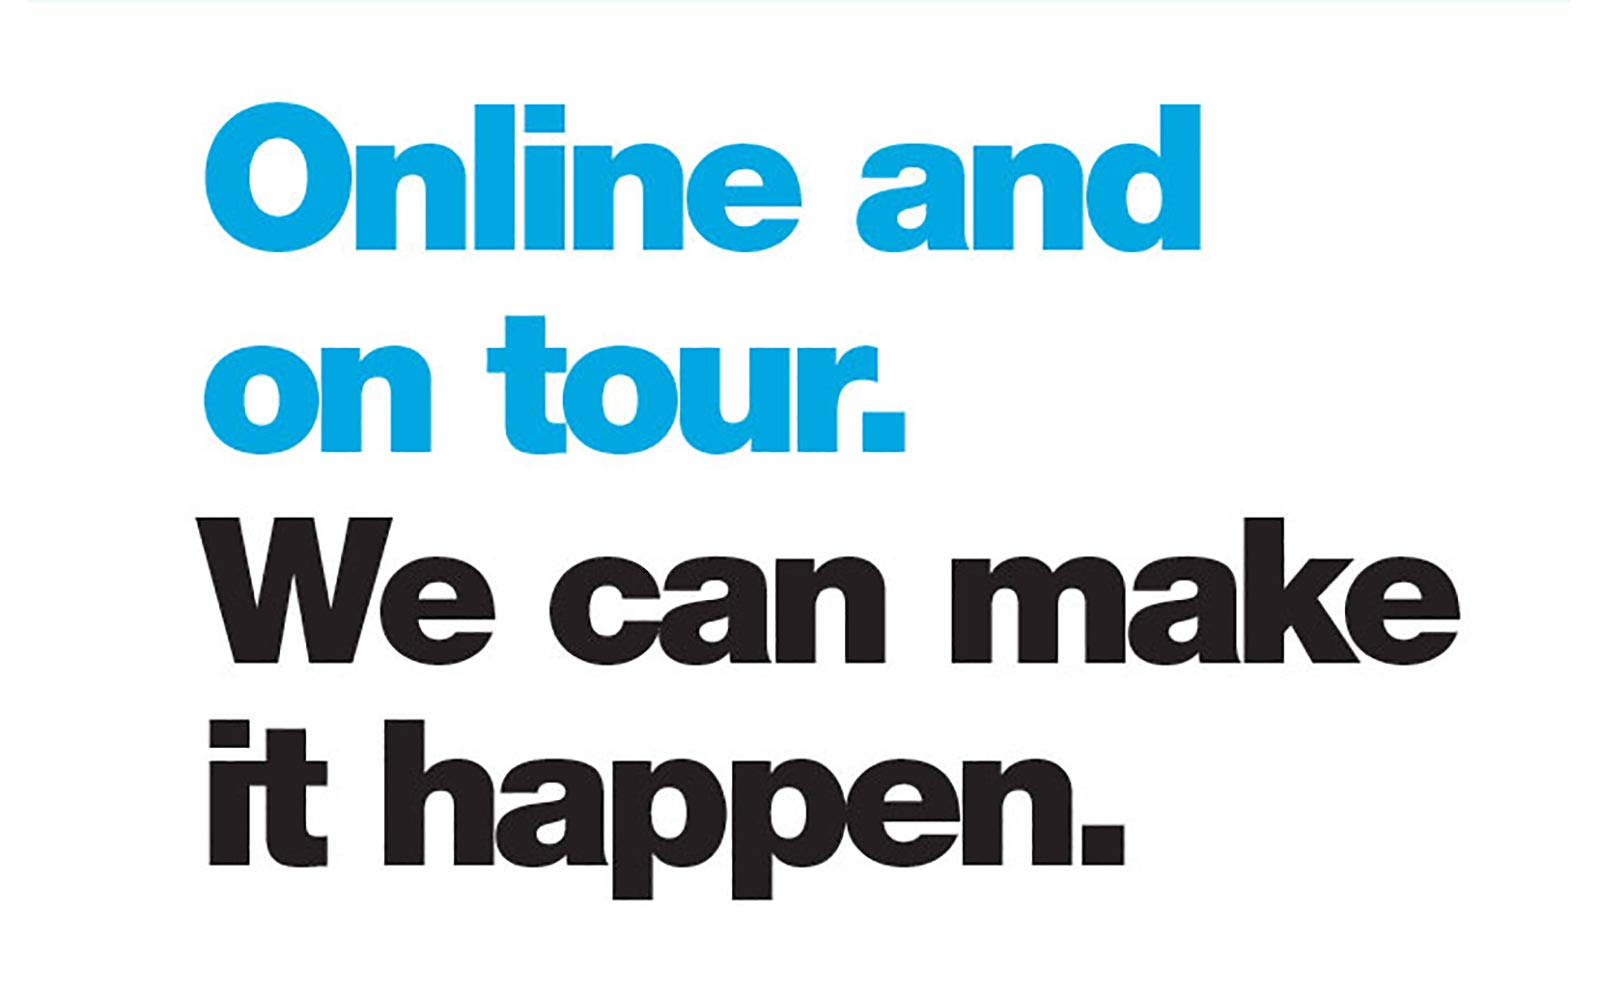 Online and on tour We can make it happen